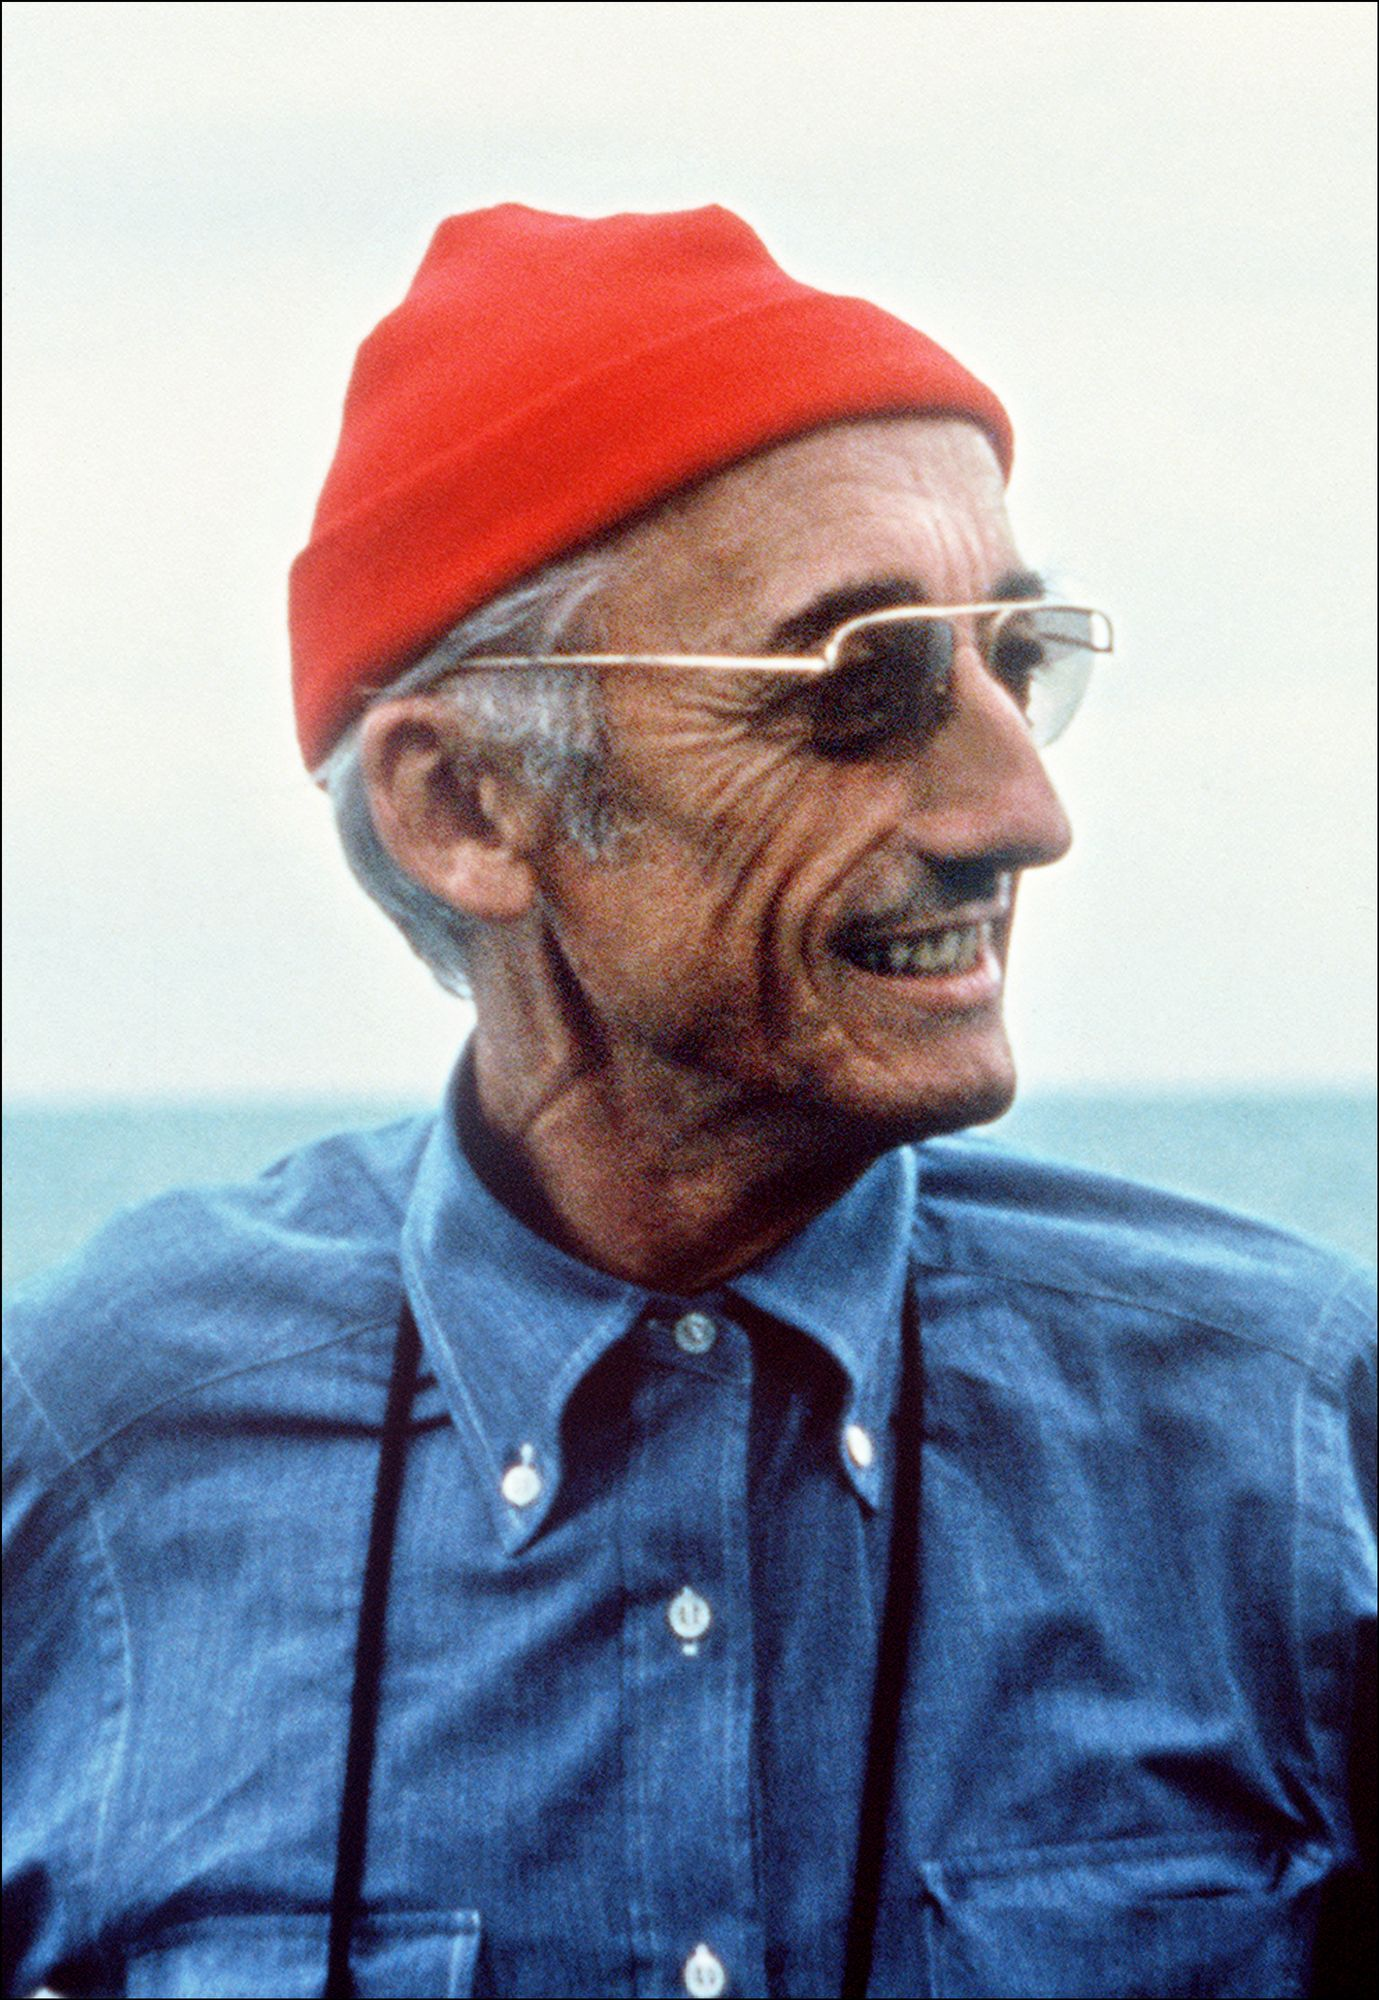 essays by jacques yves cousteau People protect what they love-jacques-yves cousteau our oceans ted amazon rainforest scuba jacques cousteau first-person essays.